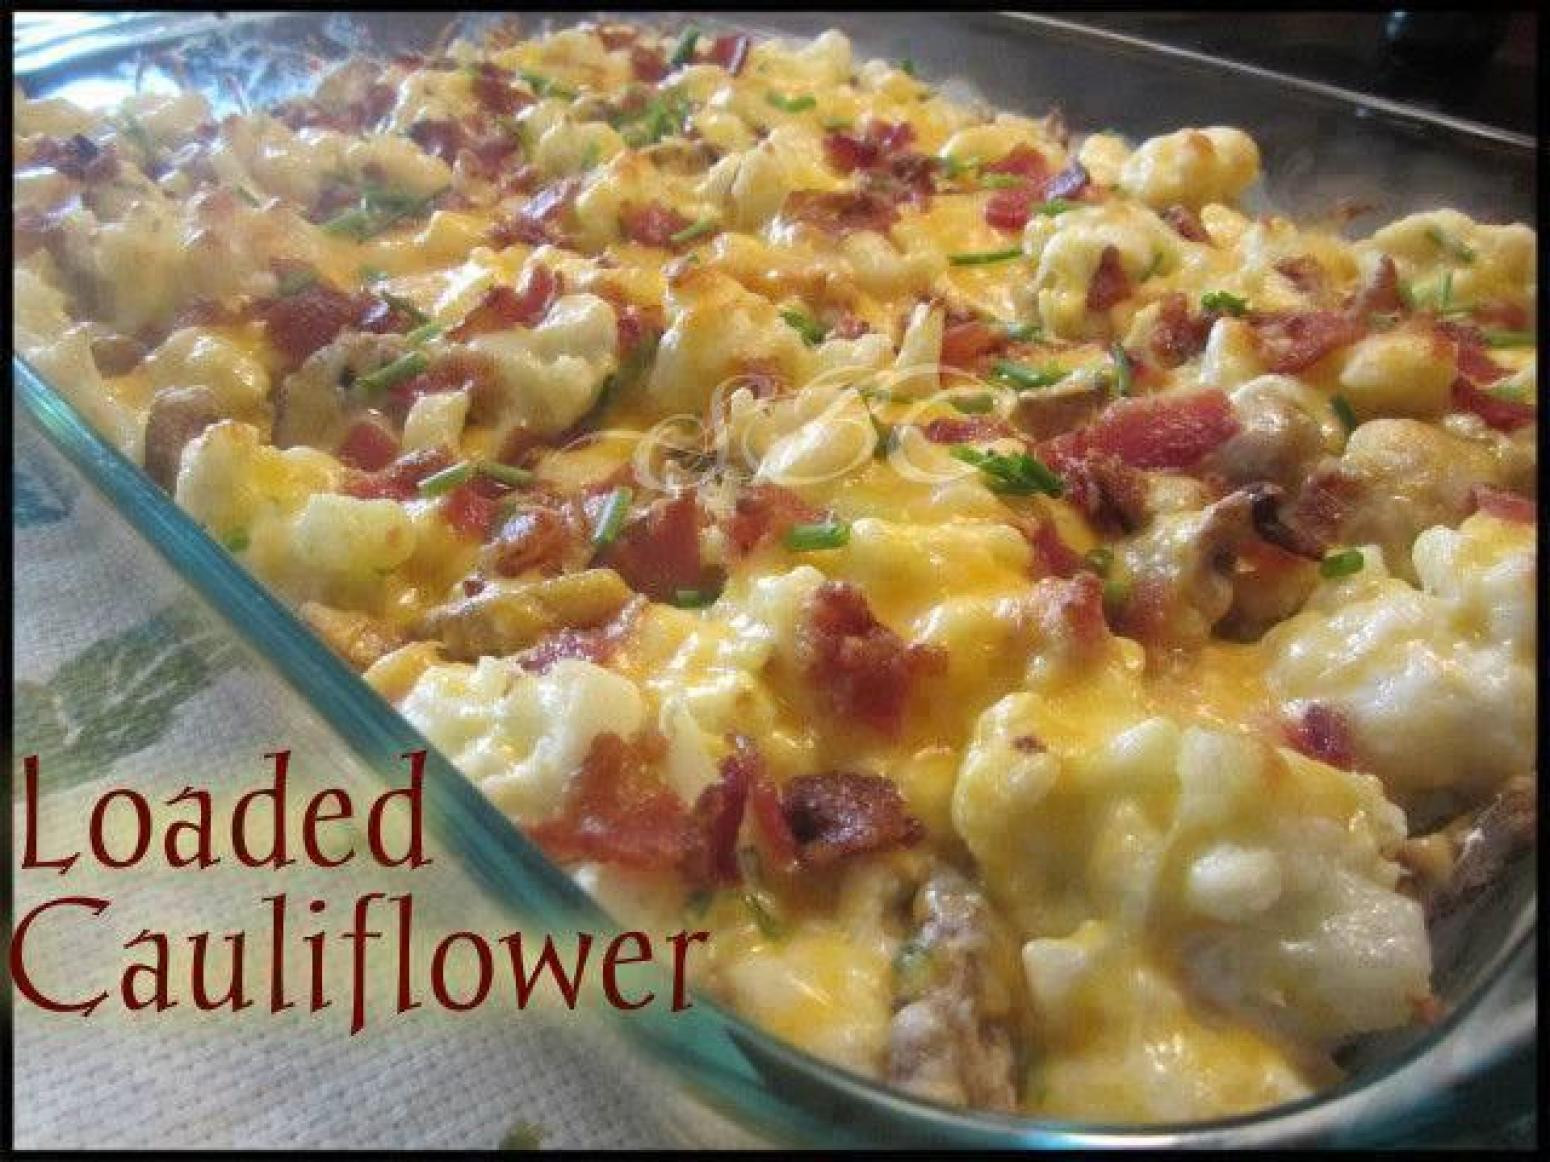 Low Carb Recipes With Cauliflower  Loaded Cauliflower and it s low carb Recipe